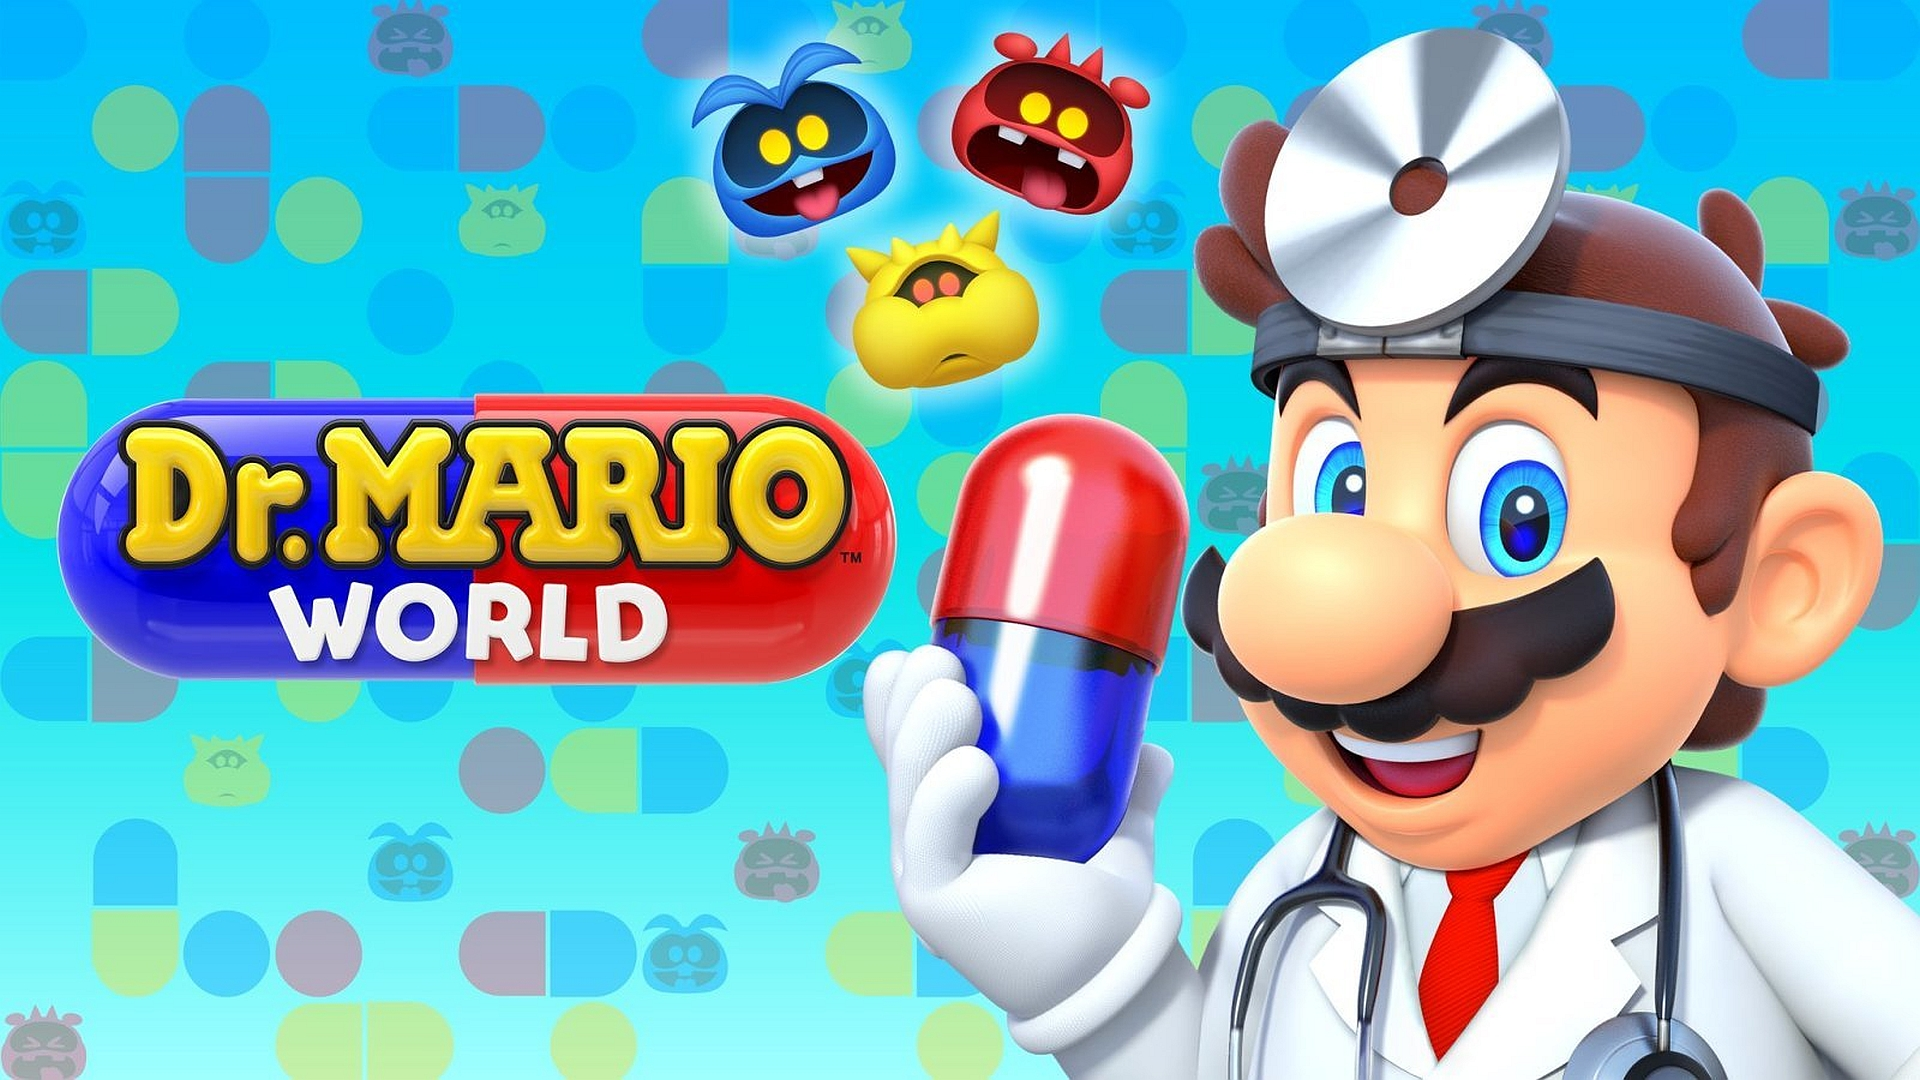 Dr  Mario World Review - The Worst Nintendo Game in Years